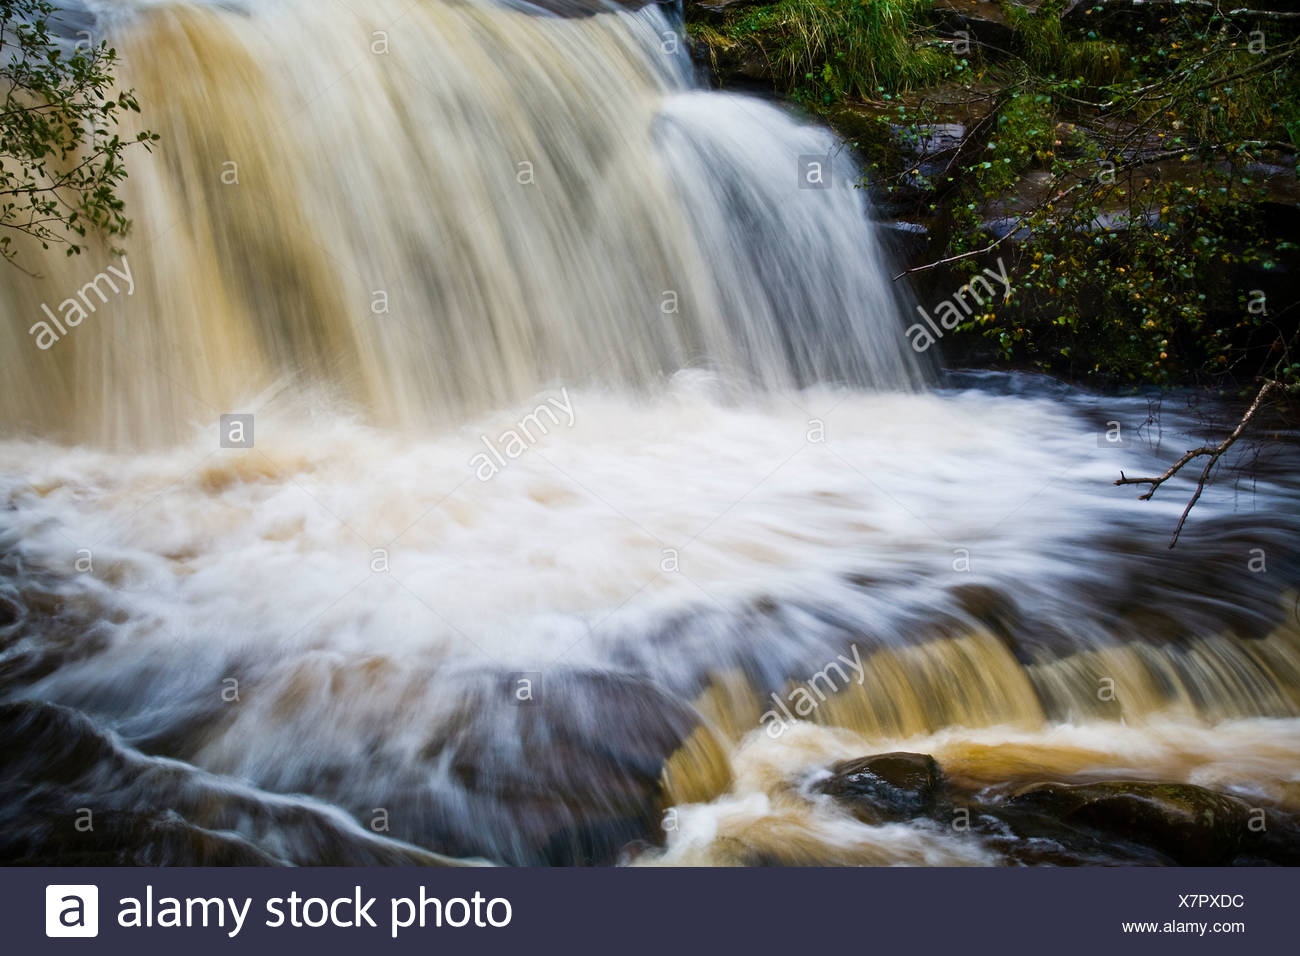 Waterfall heading towards Talybont Reservoir near Talybont-on-Usk in the Brecon Beacons. - Stock Image